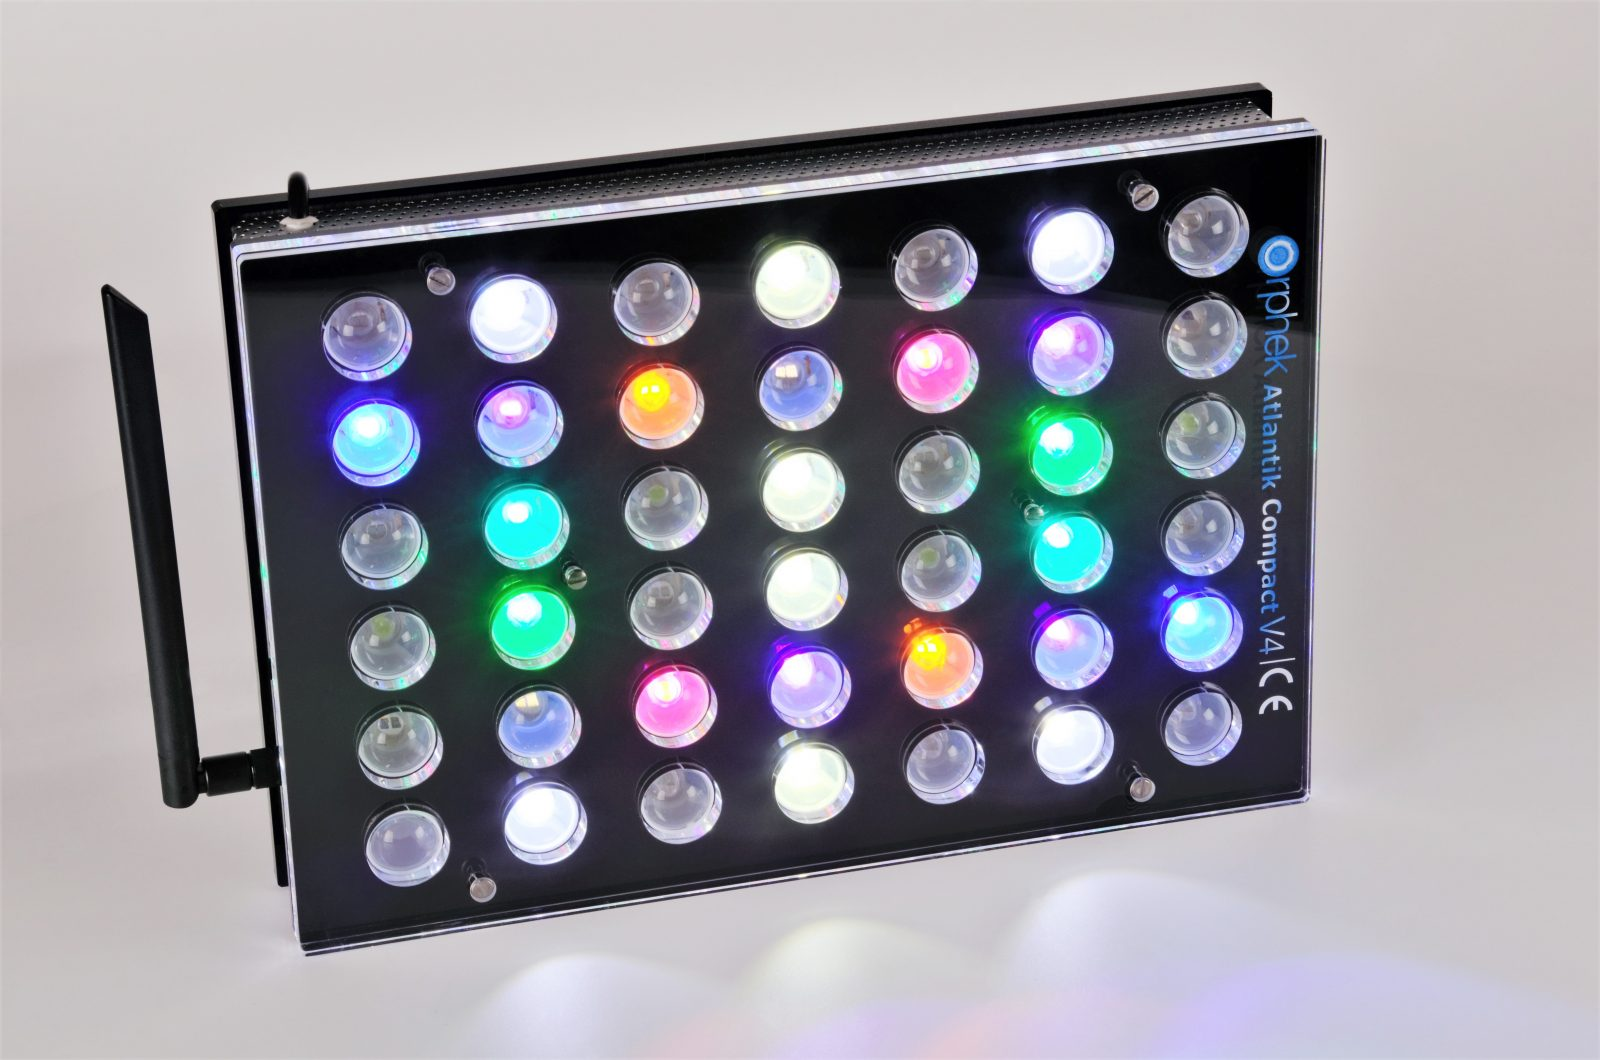 Orphek Aquarium LED Lighting Atlantik CompactV4 lig op kanaal 1 + 3 + 4